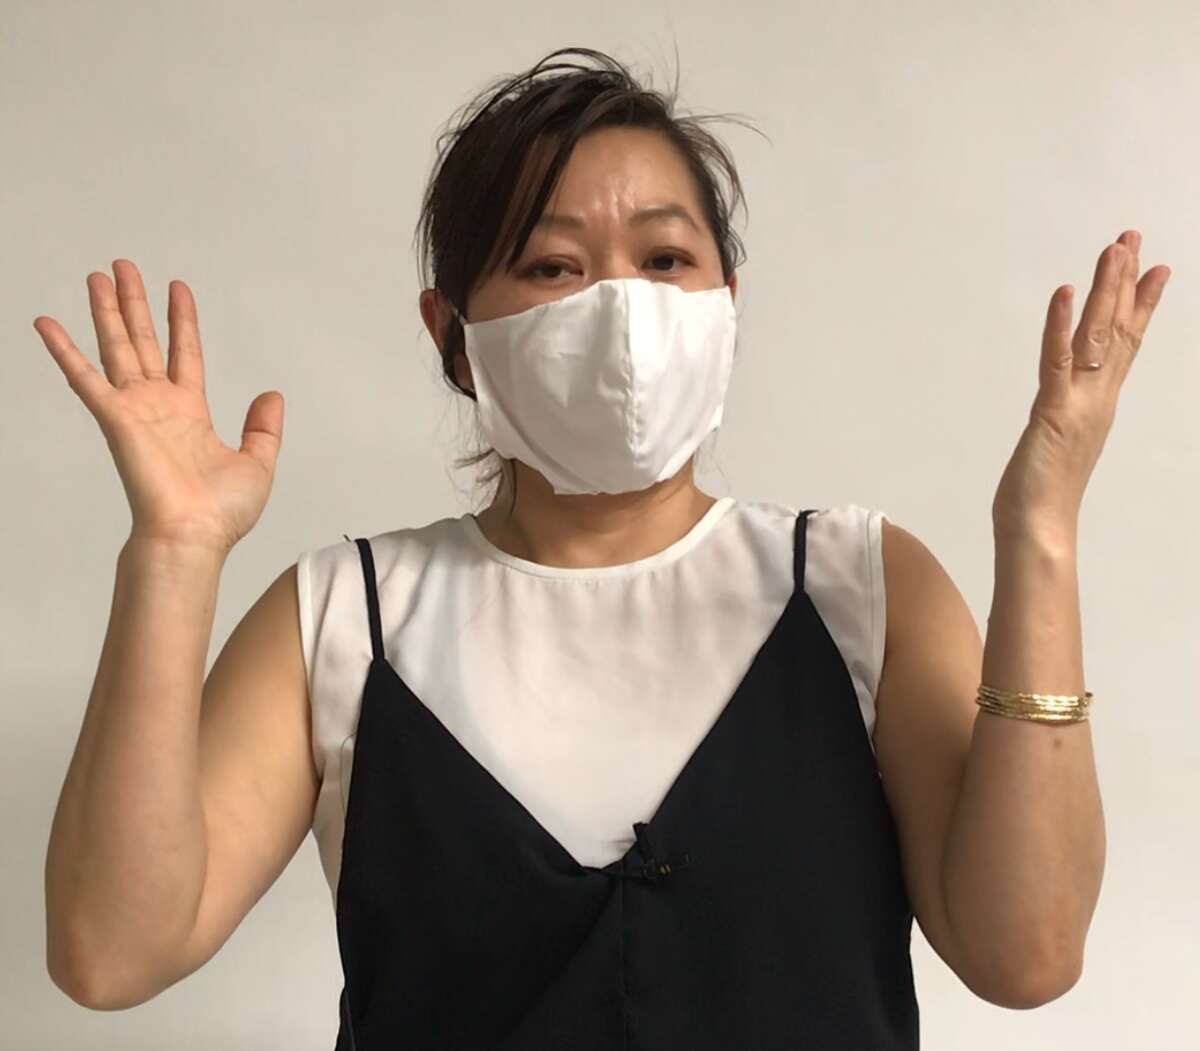 Chloe Dao is creating surgical masks for free for healthcare workers and other people who need them.